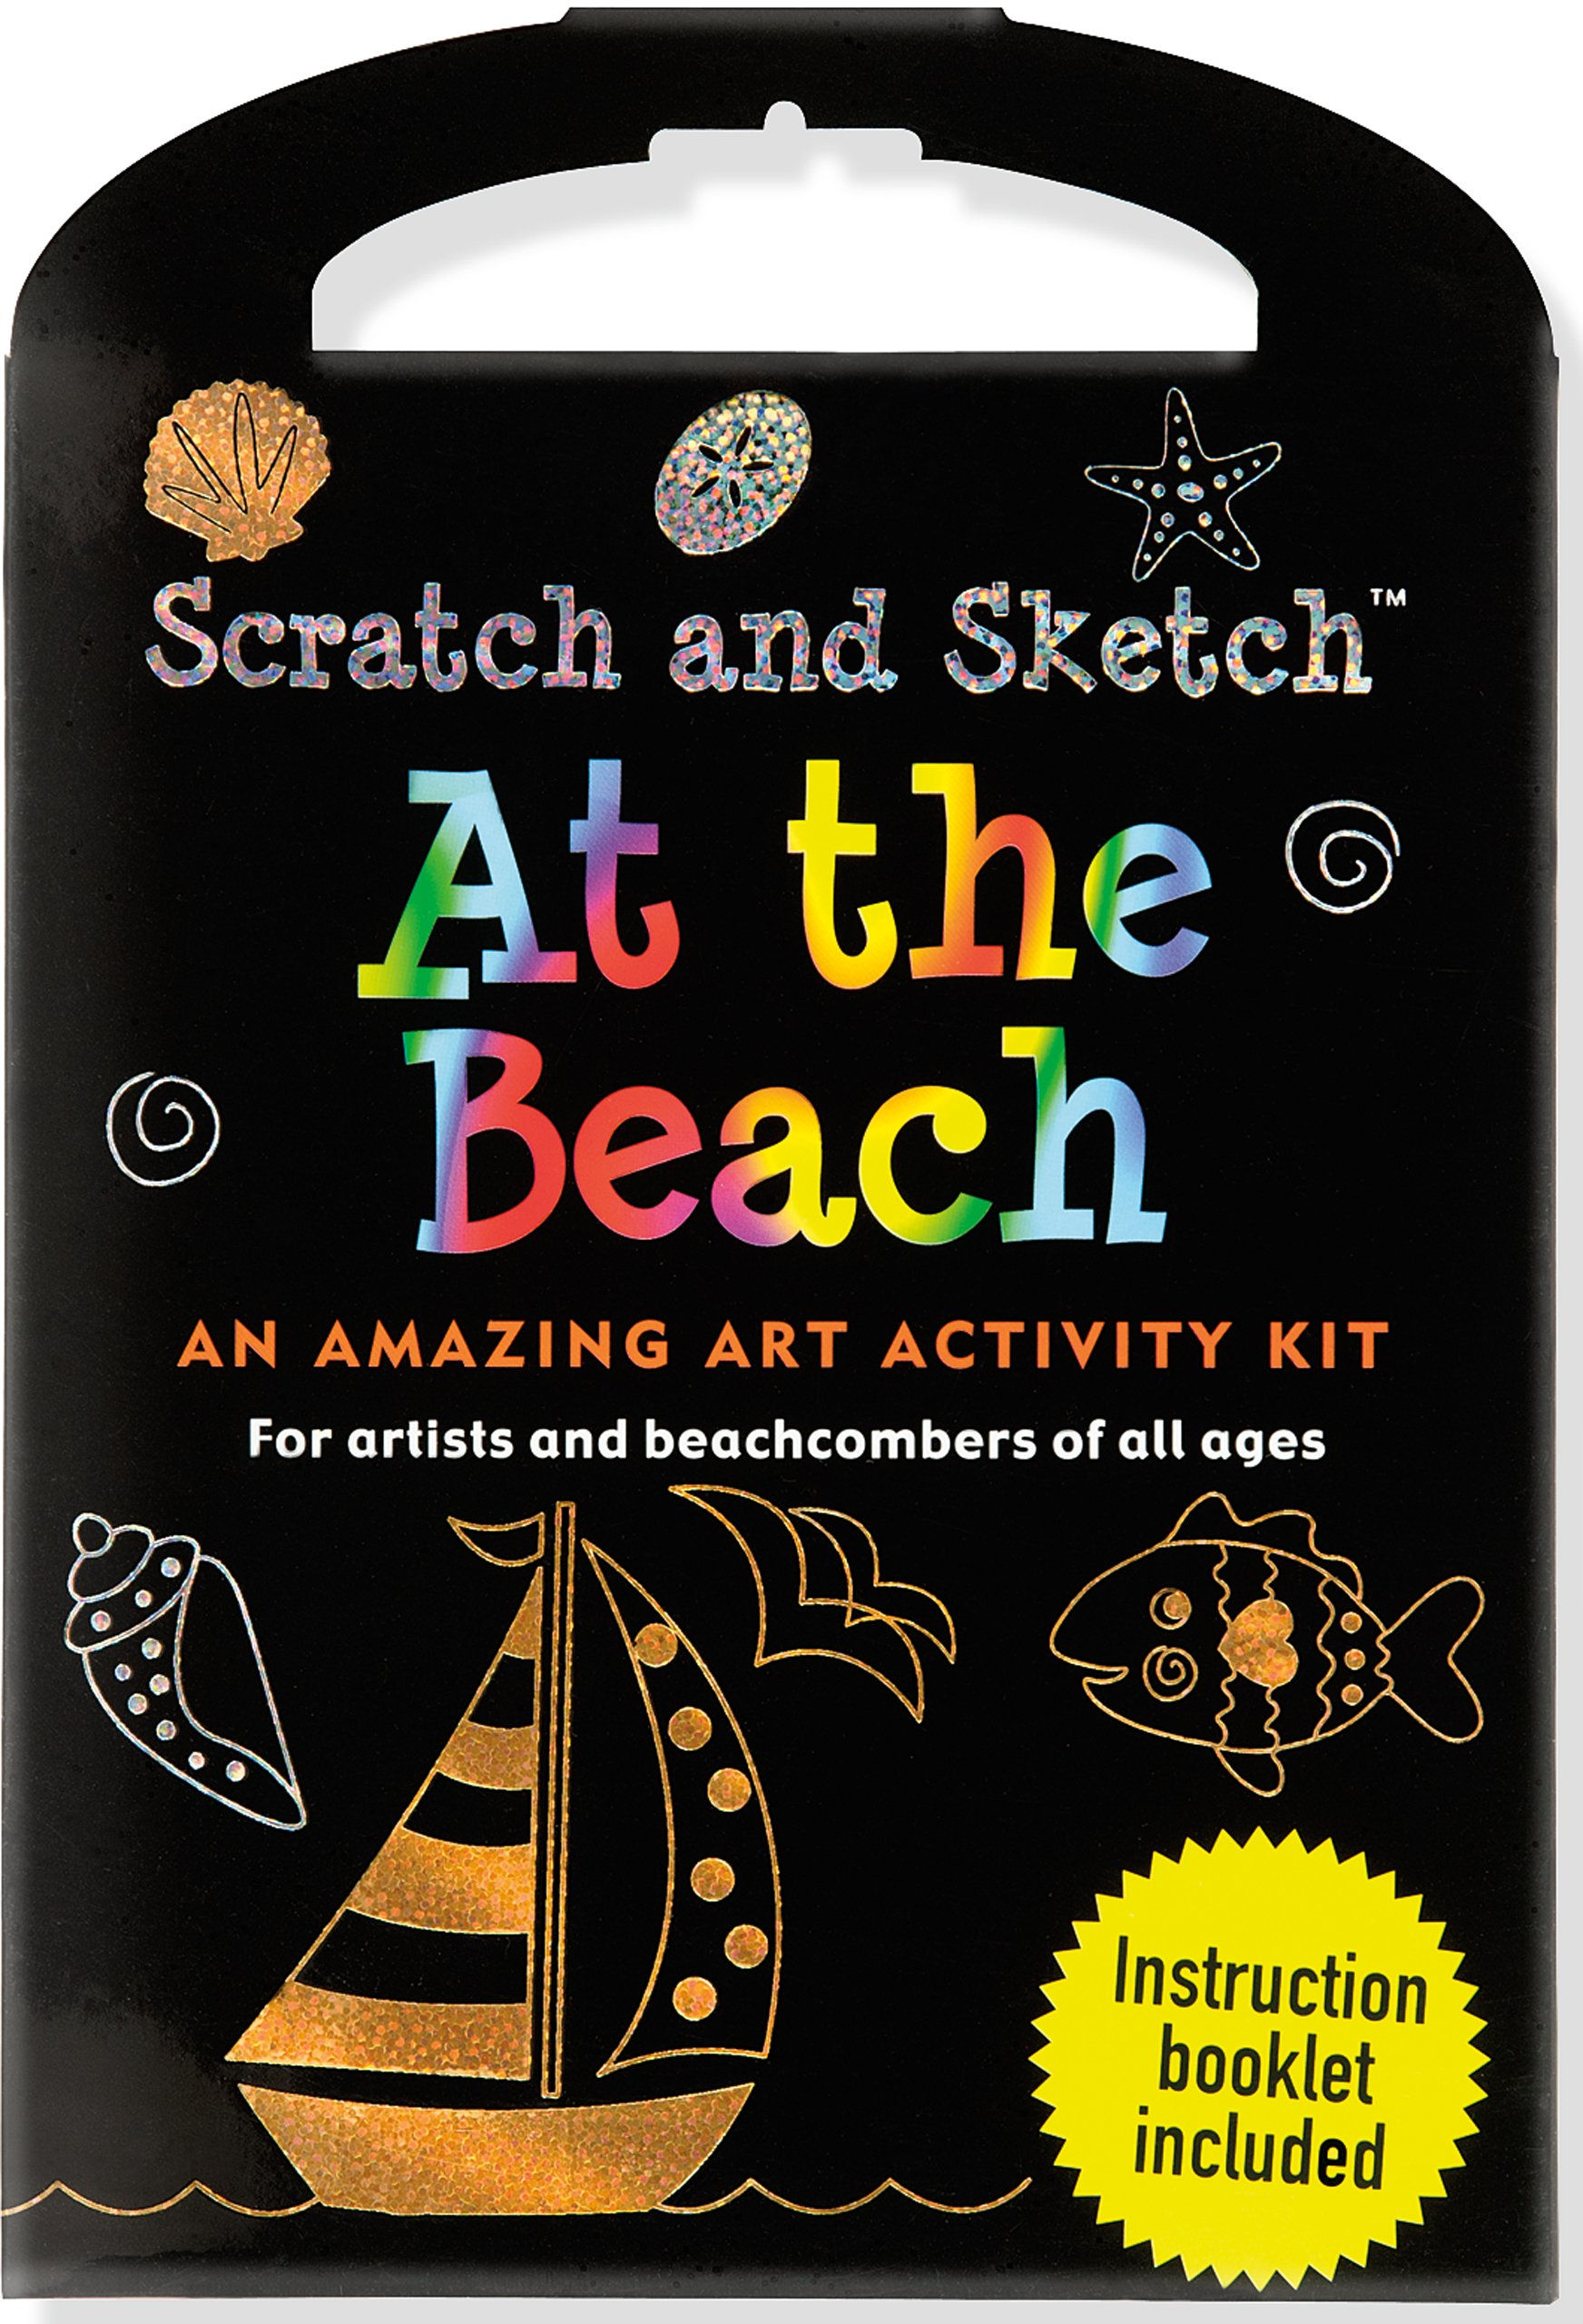 At The Beach Scratch & Sketch Kit (Scratch and Sketch Kit)